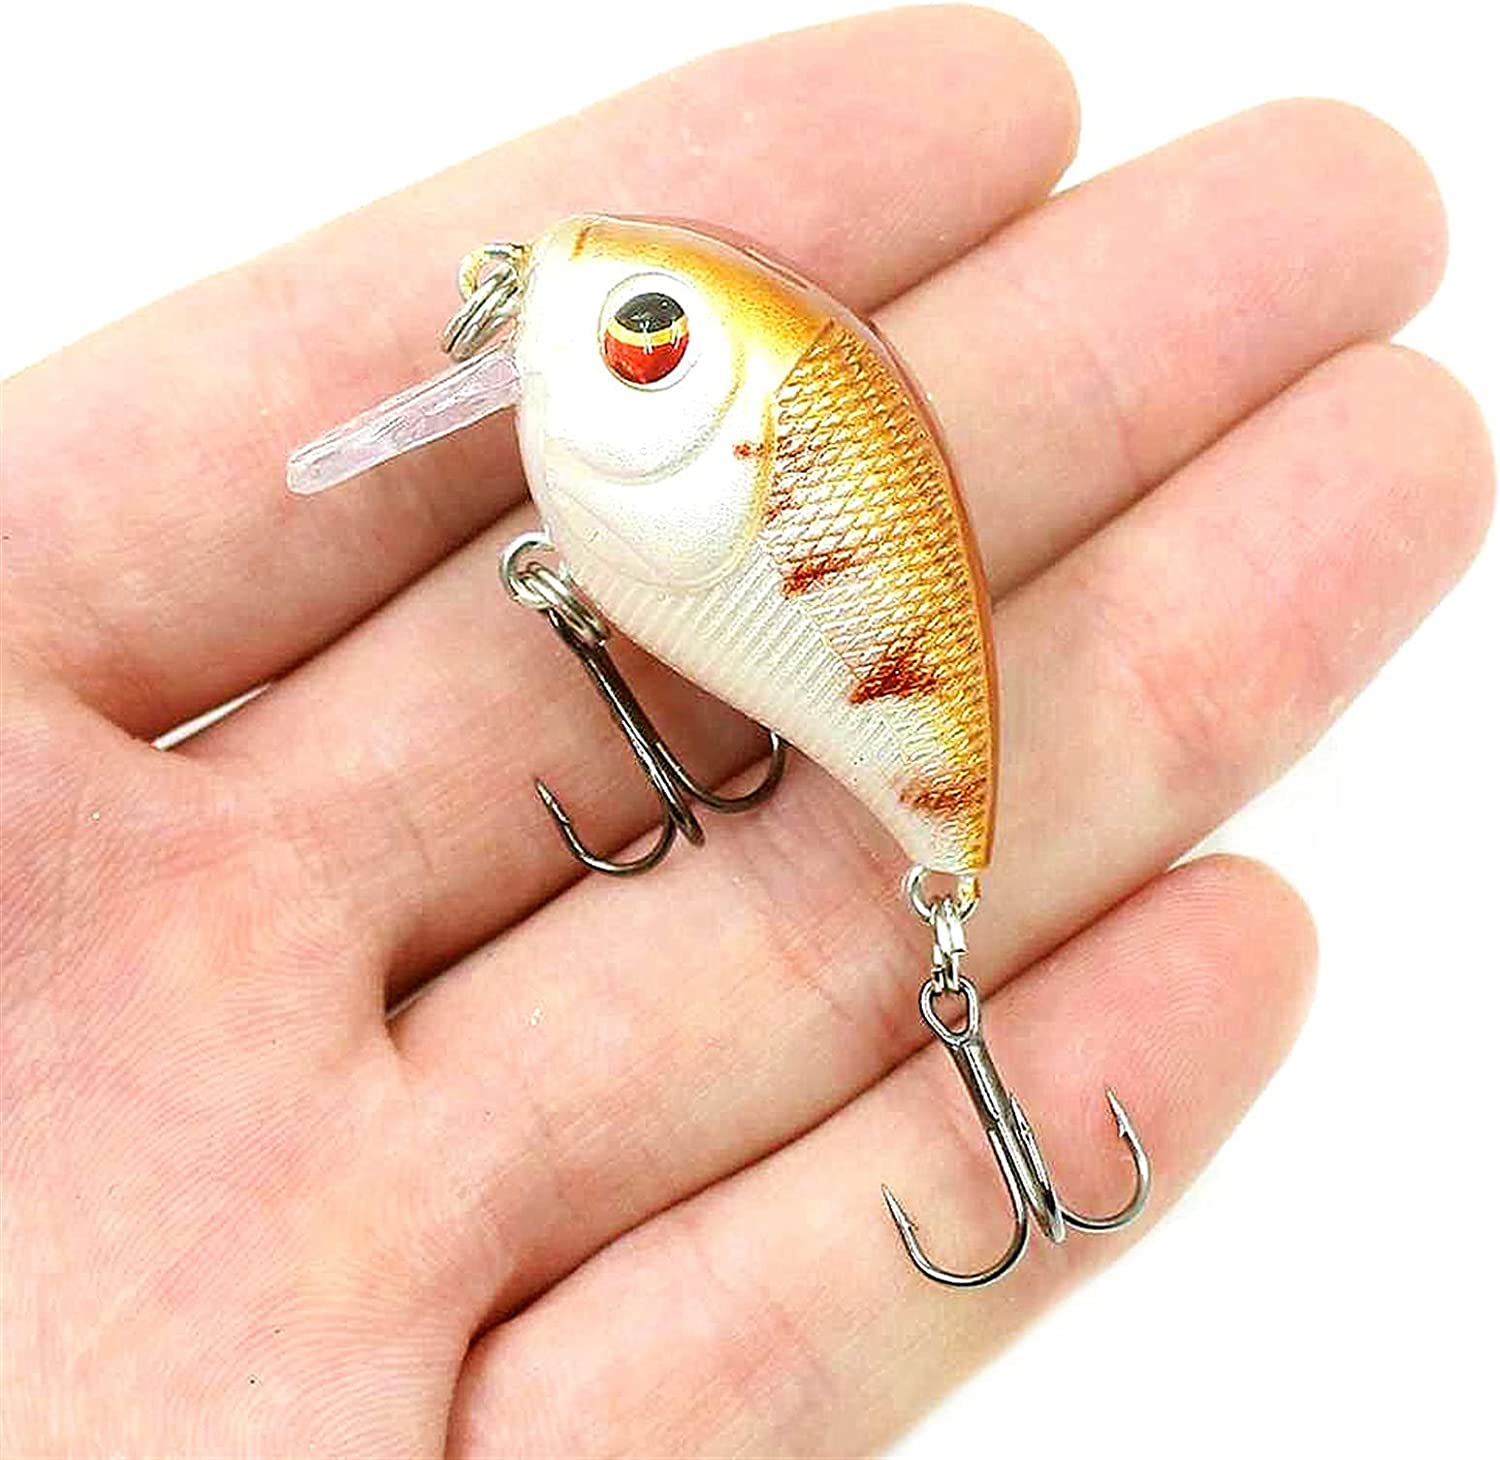 yqs Fishing Lures Crank Lure Translated Artificial Isca Washington Mall 7.4g 4.5cm